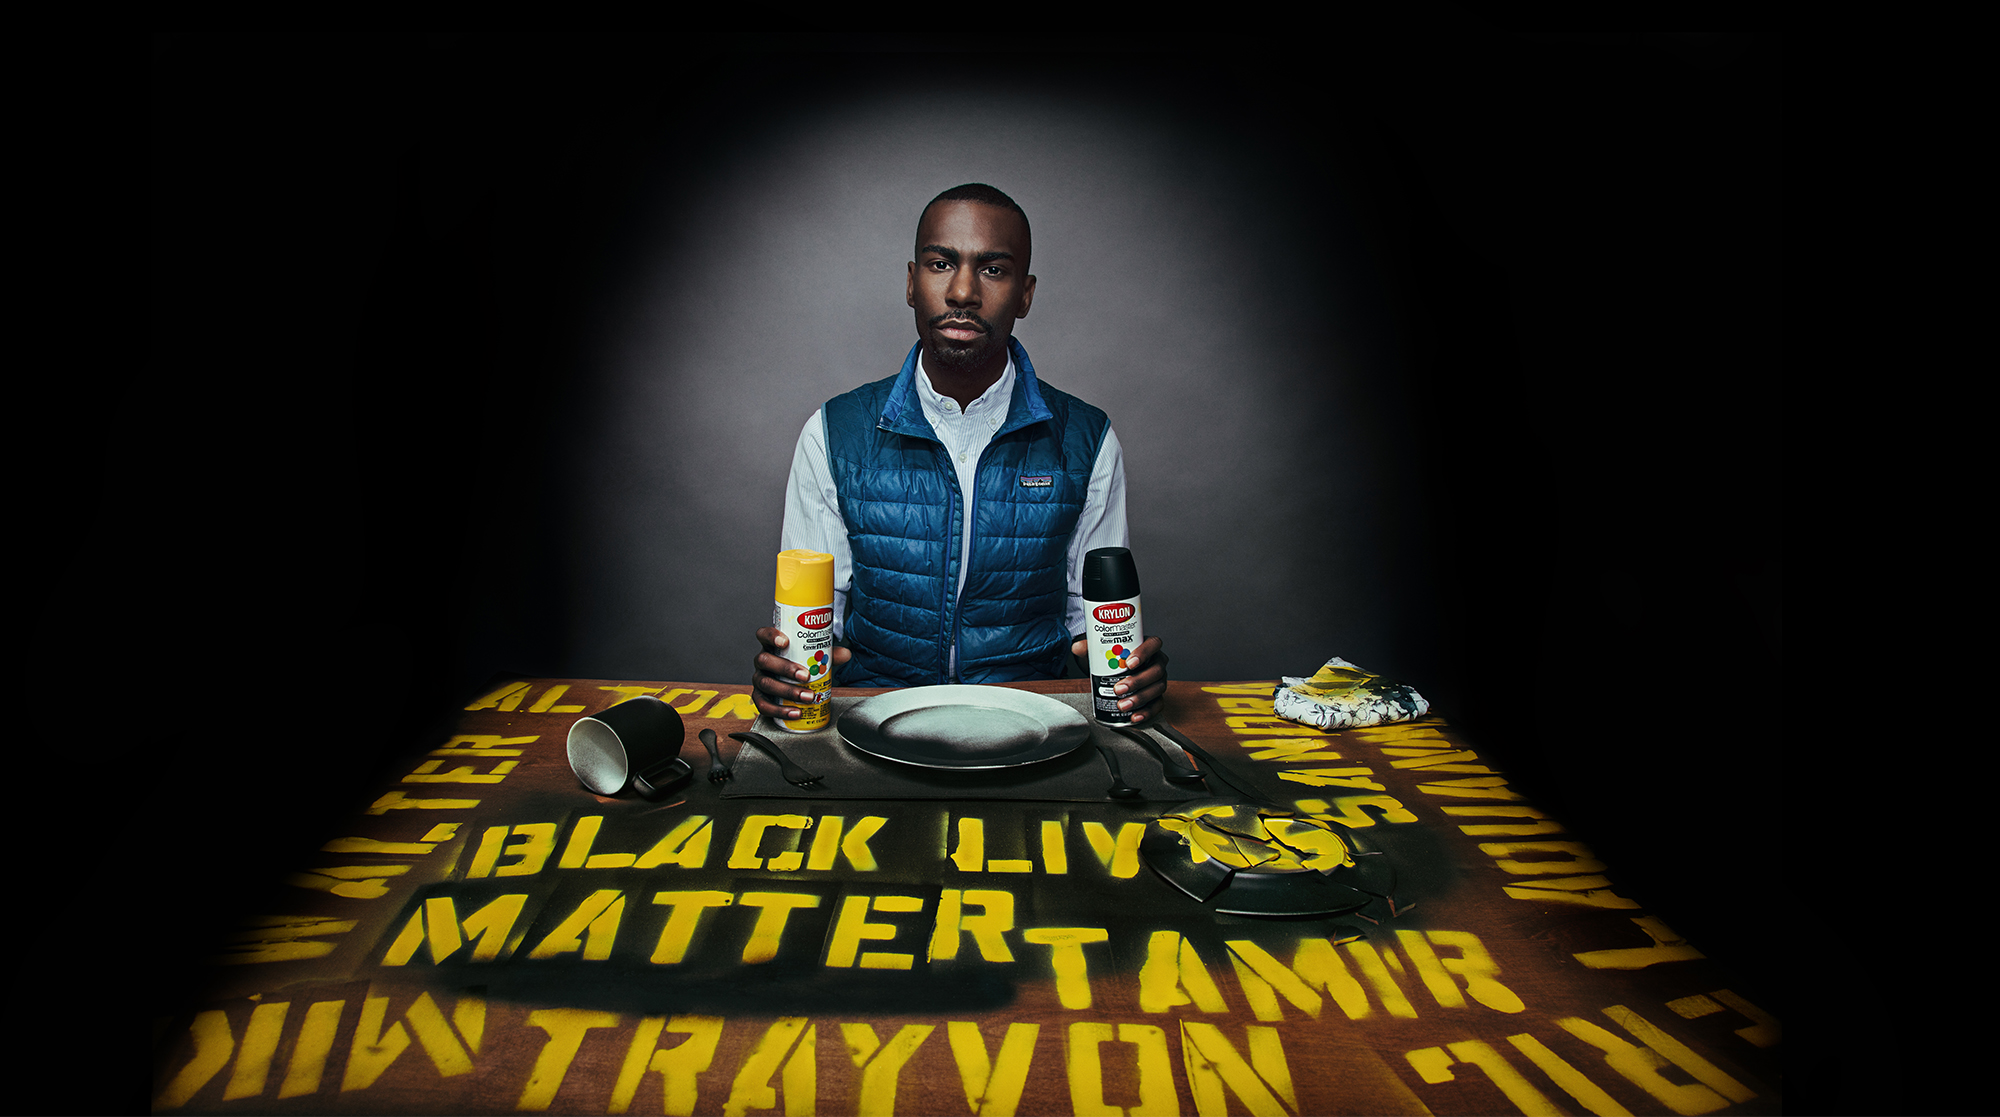 deray mckesson, deray mckesson activist, deray mckesson uw, deray mckesson podcast, deray mckesson black lives matter